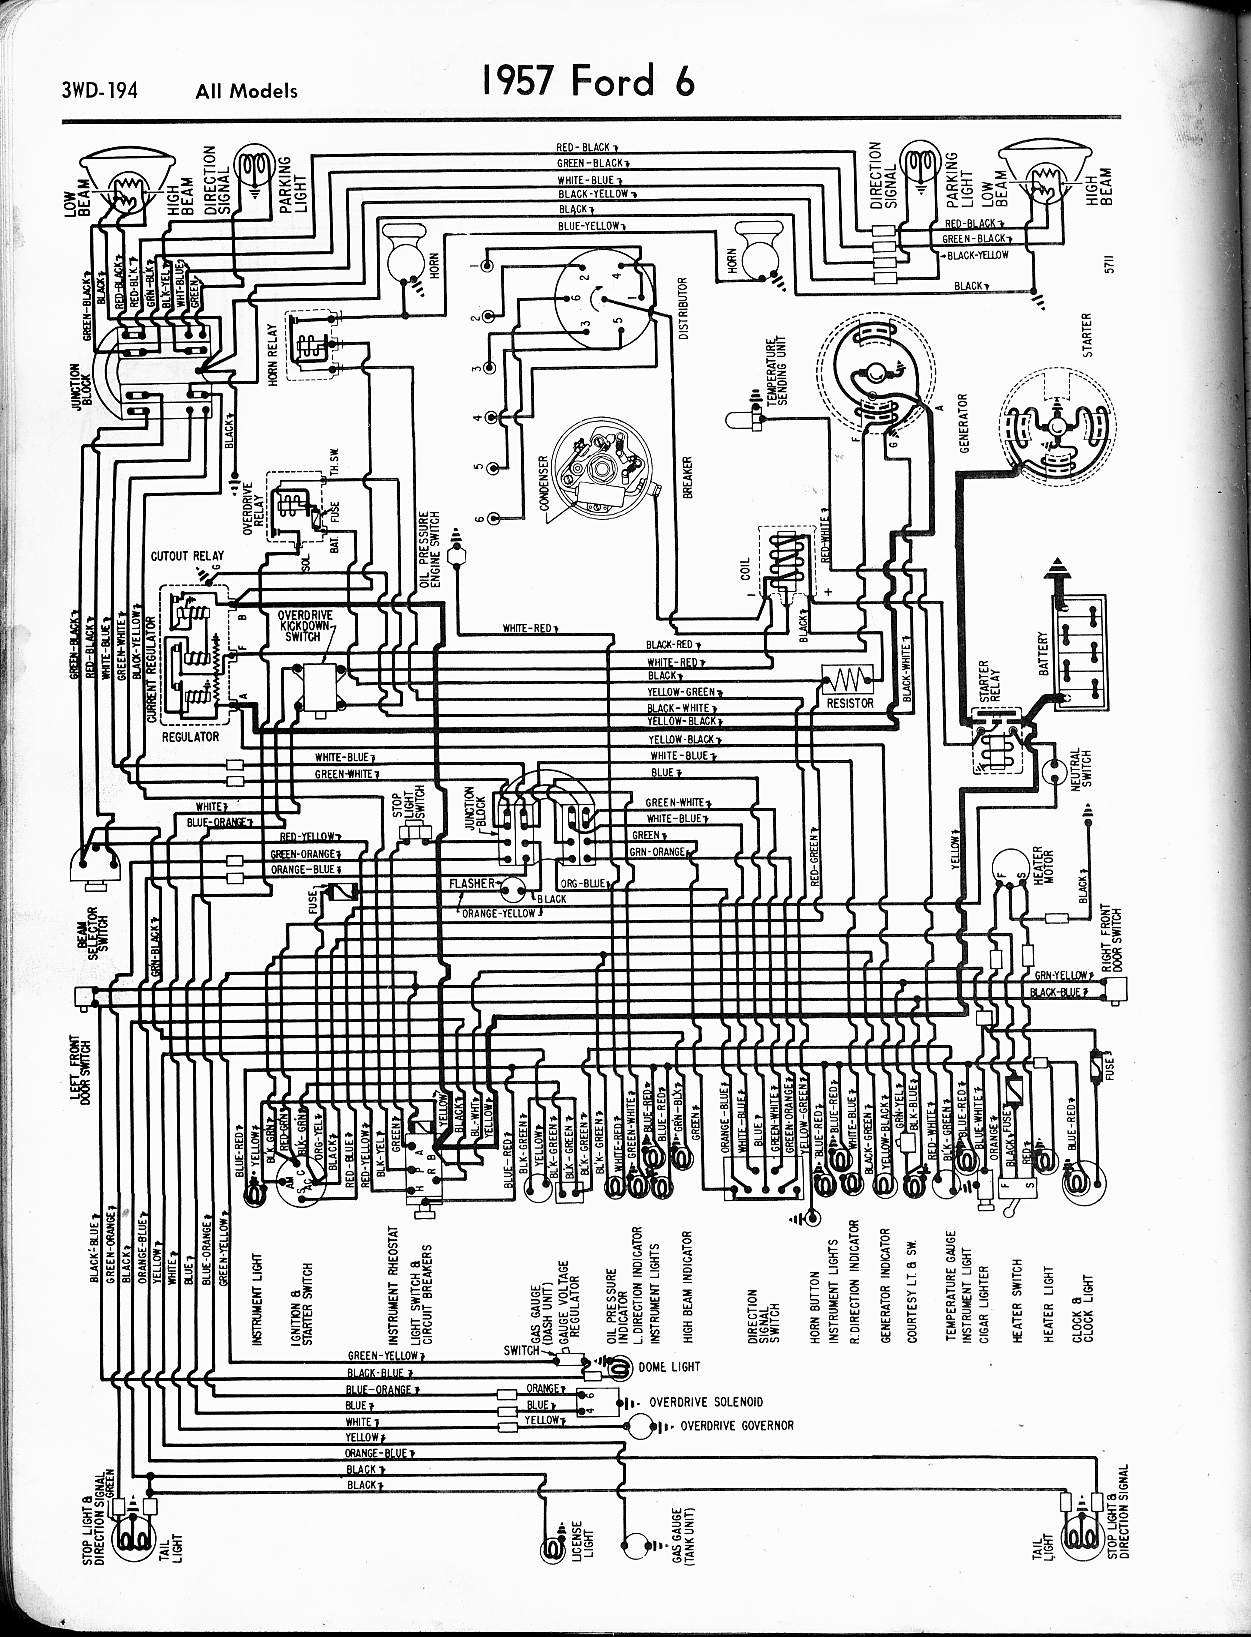 Ford F250 Parts Diagram 1957 ford Wiring Diagram Wiring Data Of Ford F250  Parts Diagram Zetec